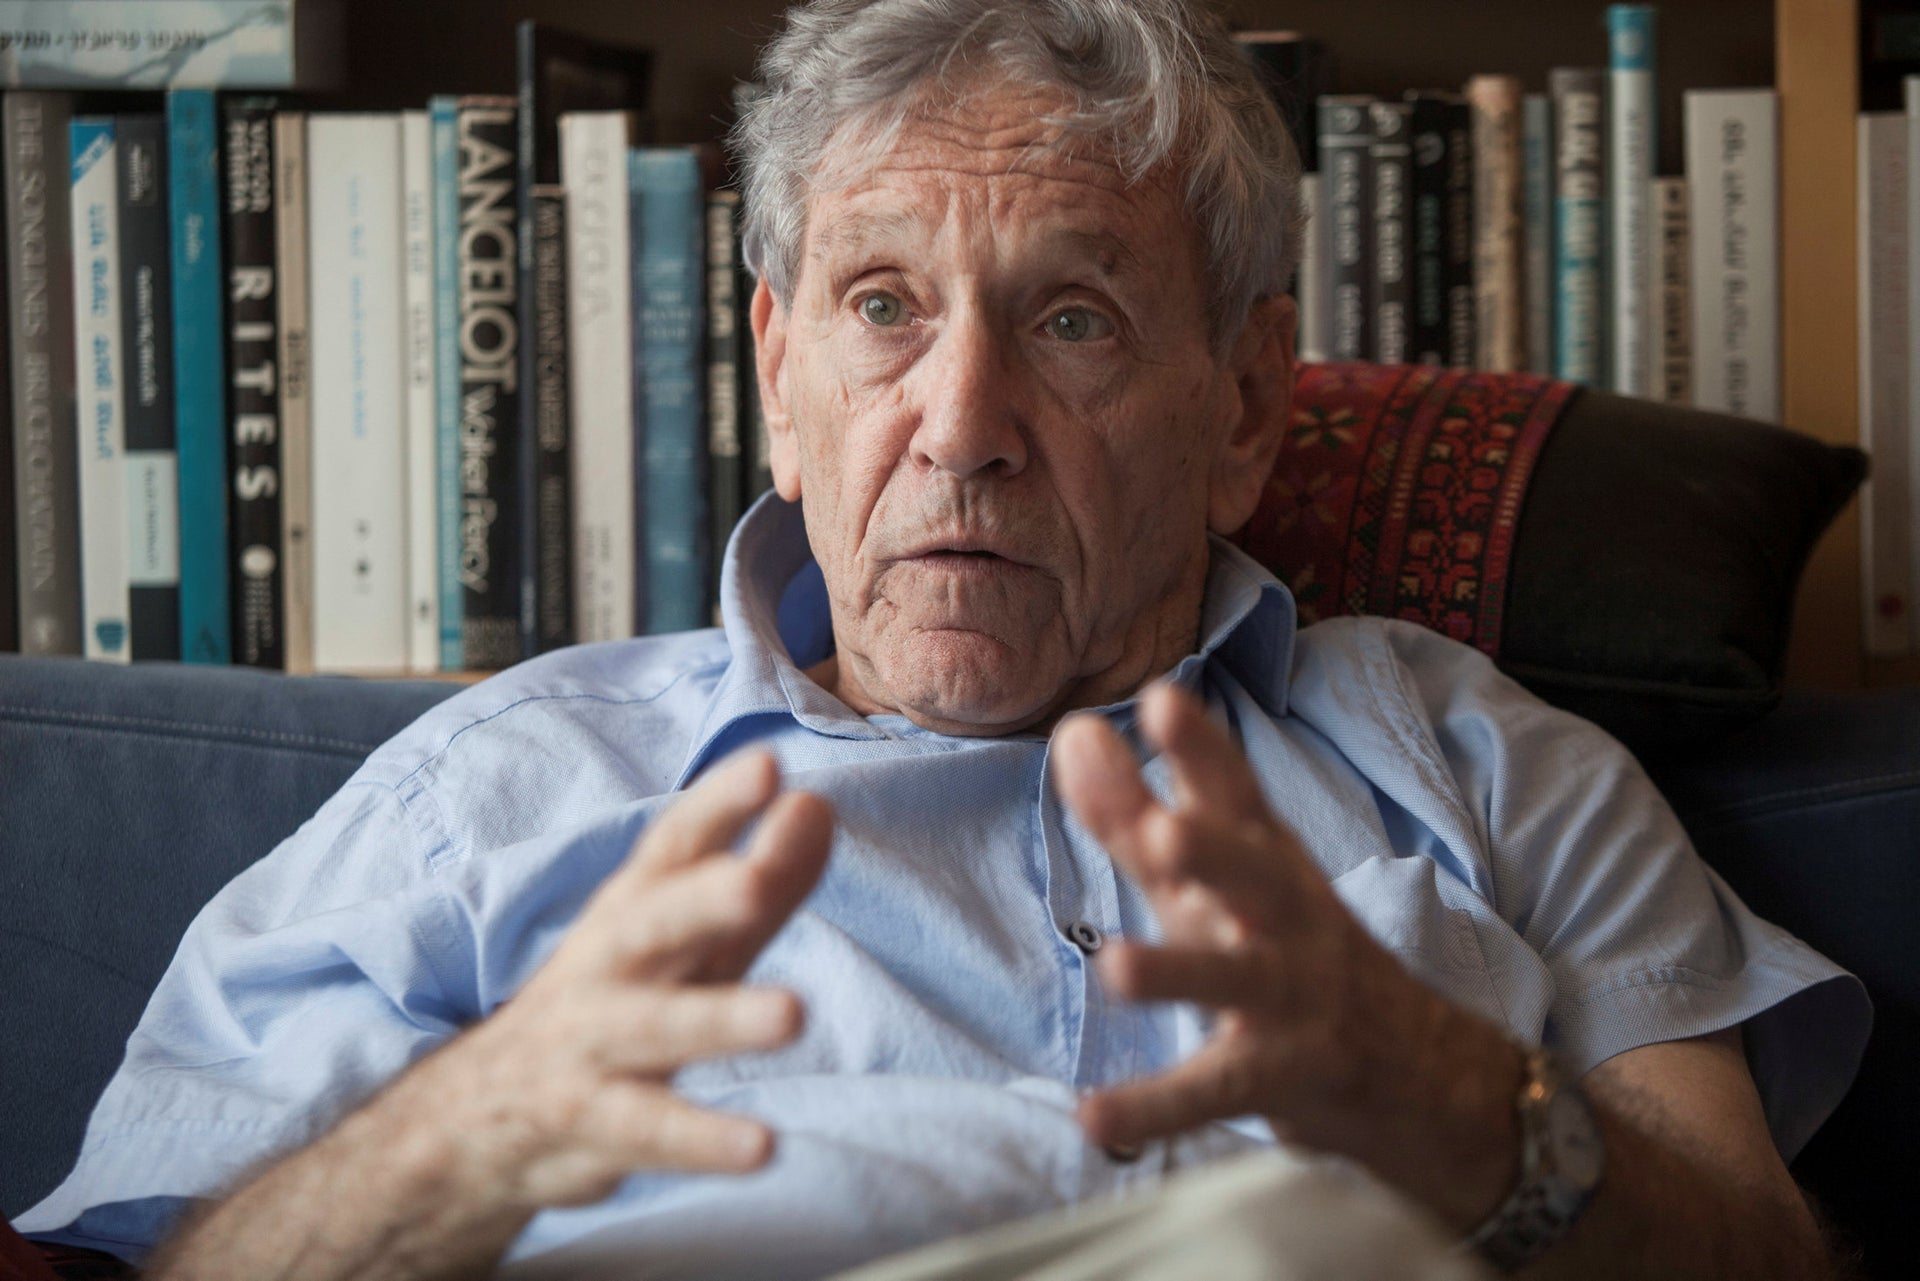 In this Nov. 4, 2015 file photo, Israeli writer Amos Oz poses for a photo at his house in Tel Aviv, Israel. Israeli media said Friday, Dec. 28, 2018 that renowned Israeli author Amos Oz has died at the age of 79.